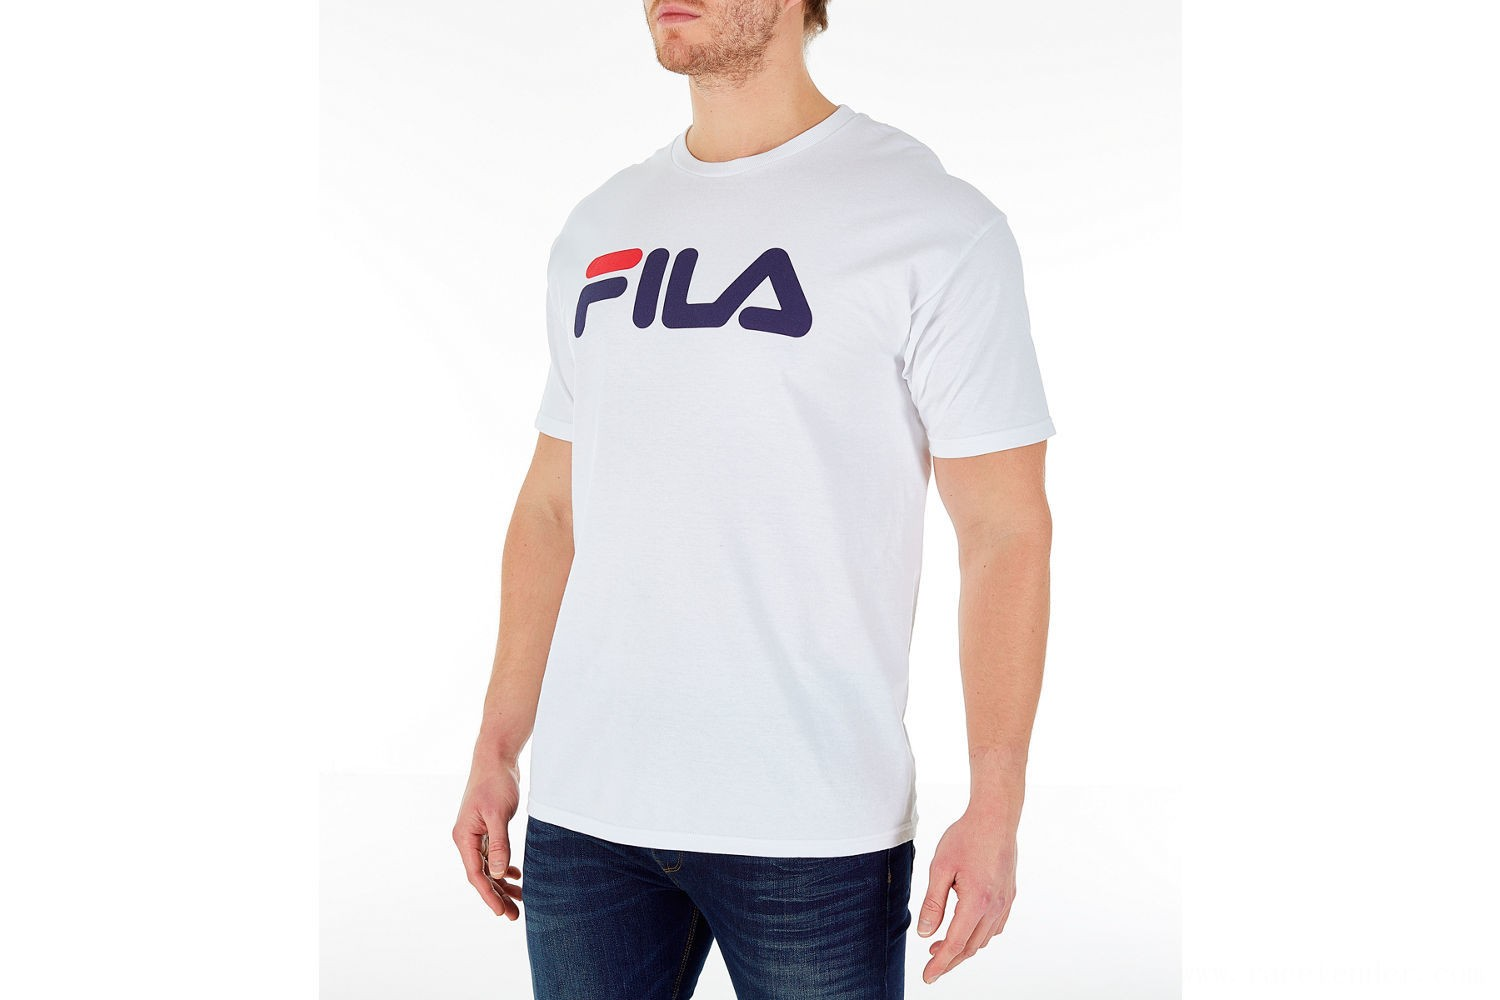 Fila Men's Logo T-Shirt - White